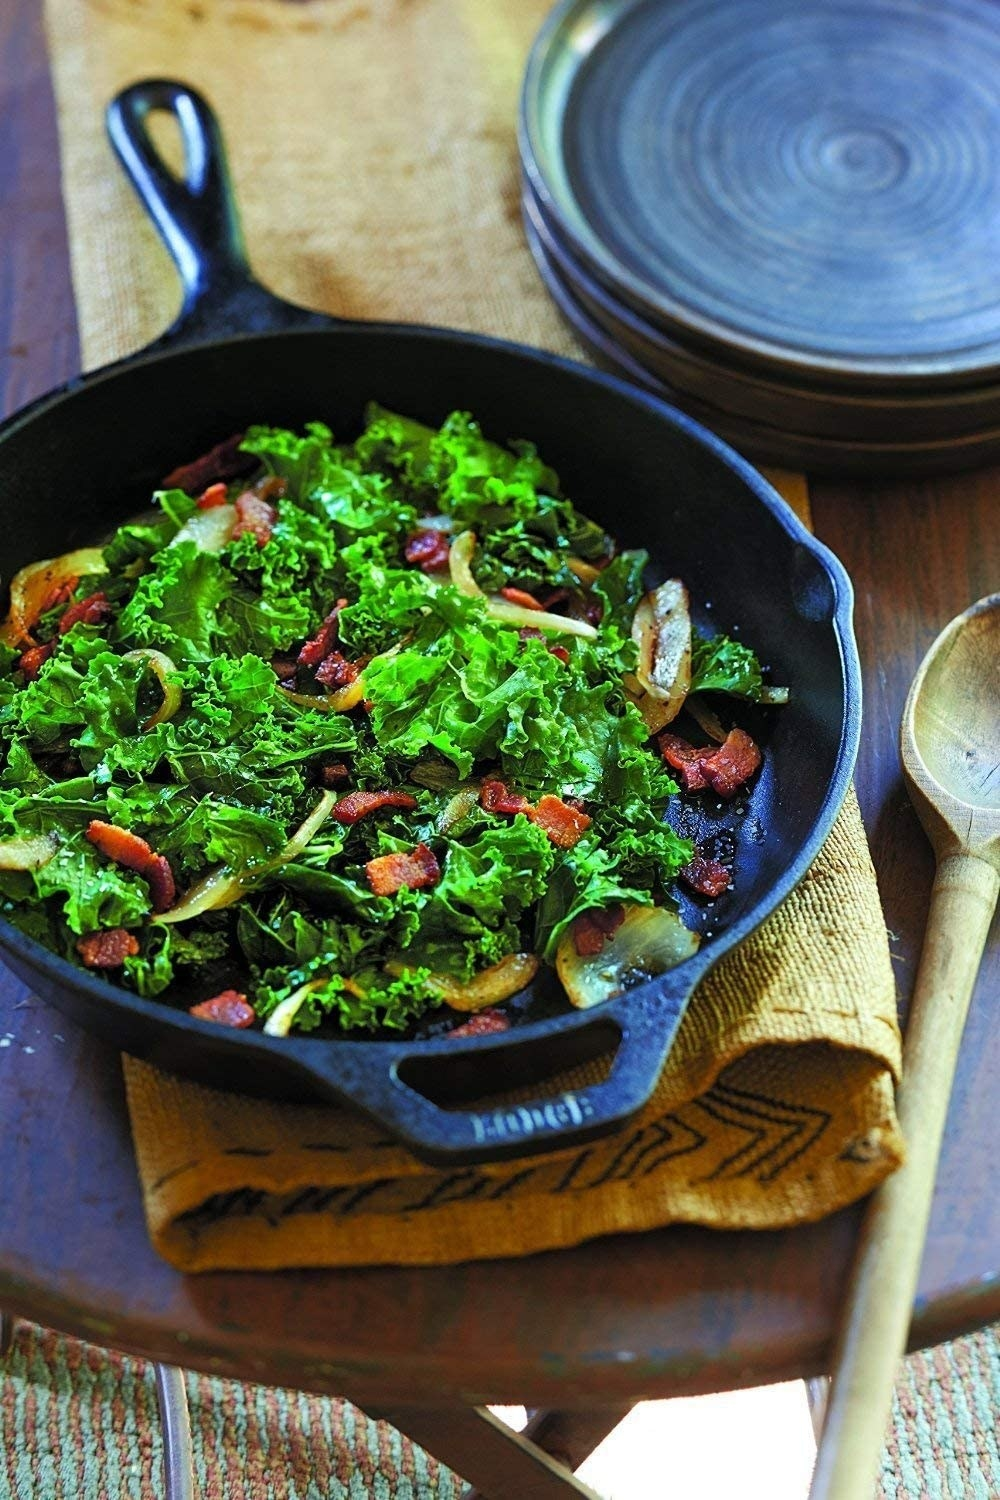 Cast iron skillet filled with greens